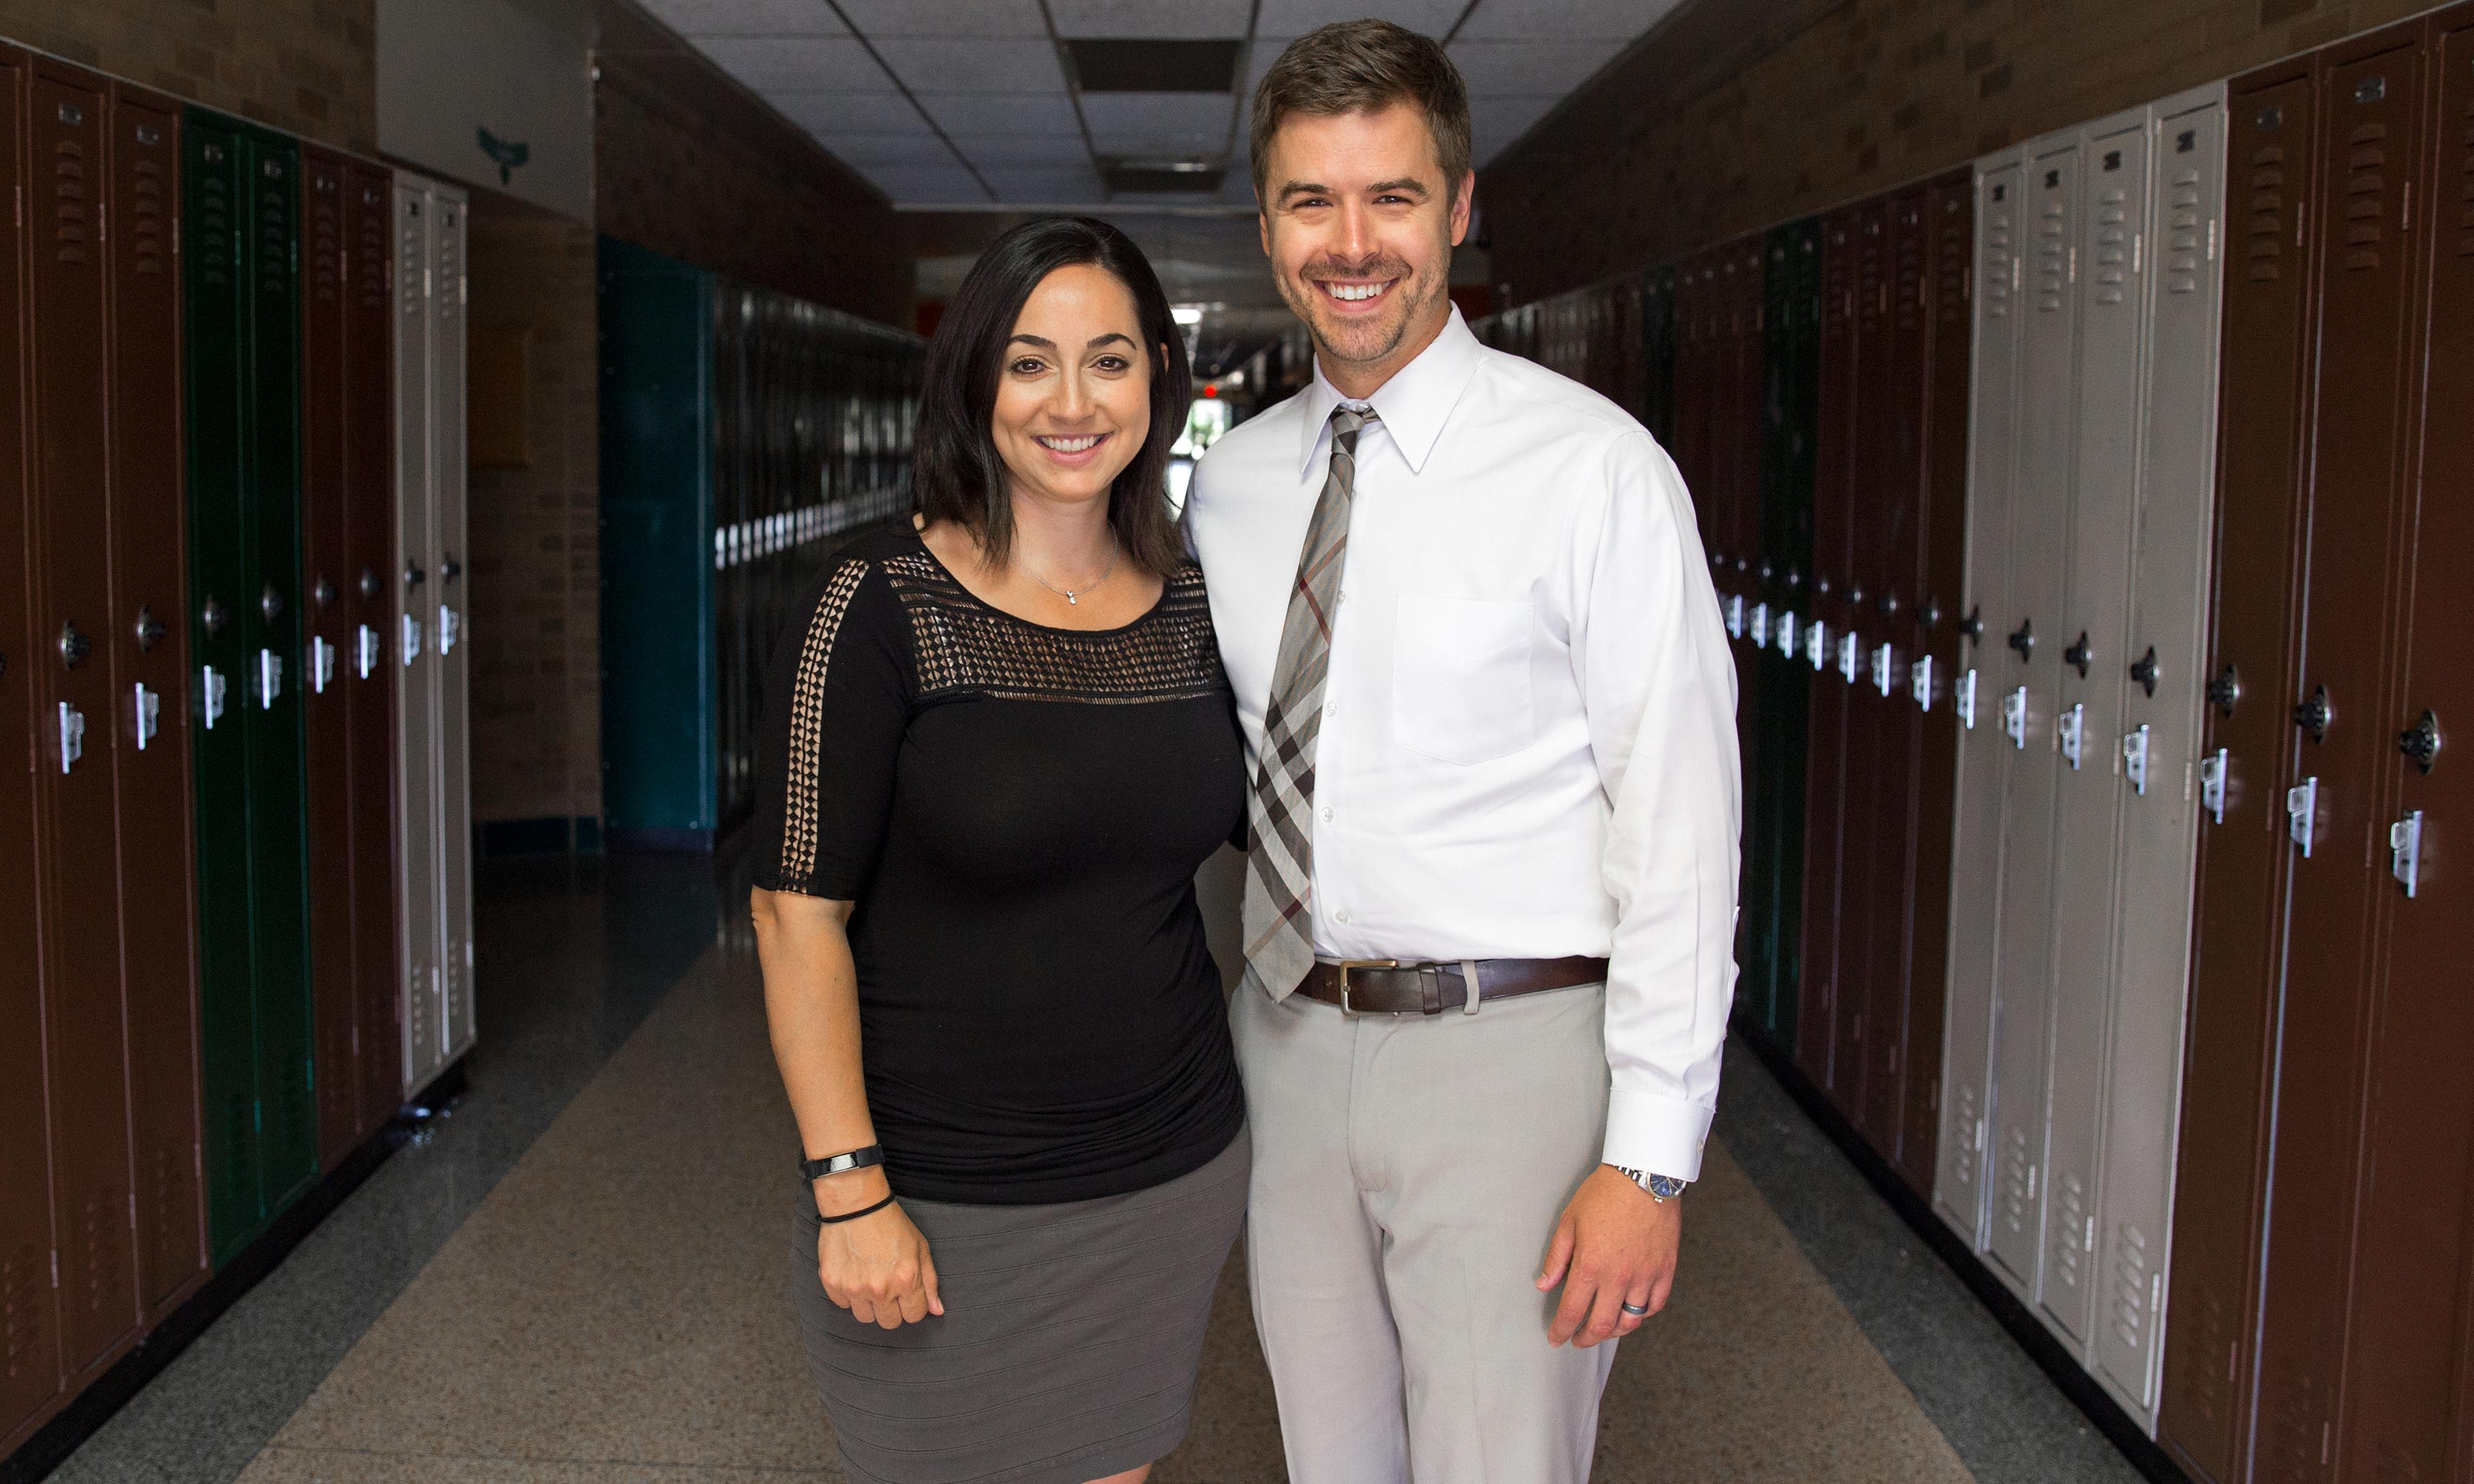 Oakland University alums Cliff and Angie Snitgen in the classroom